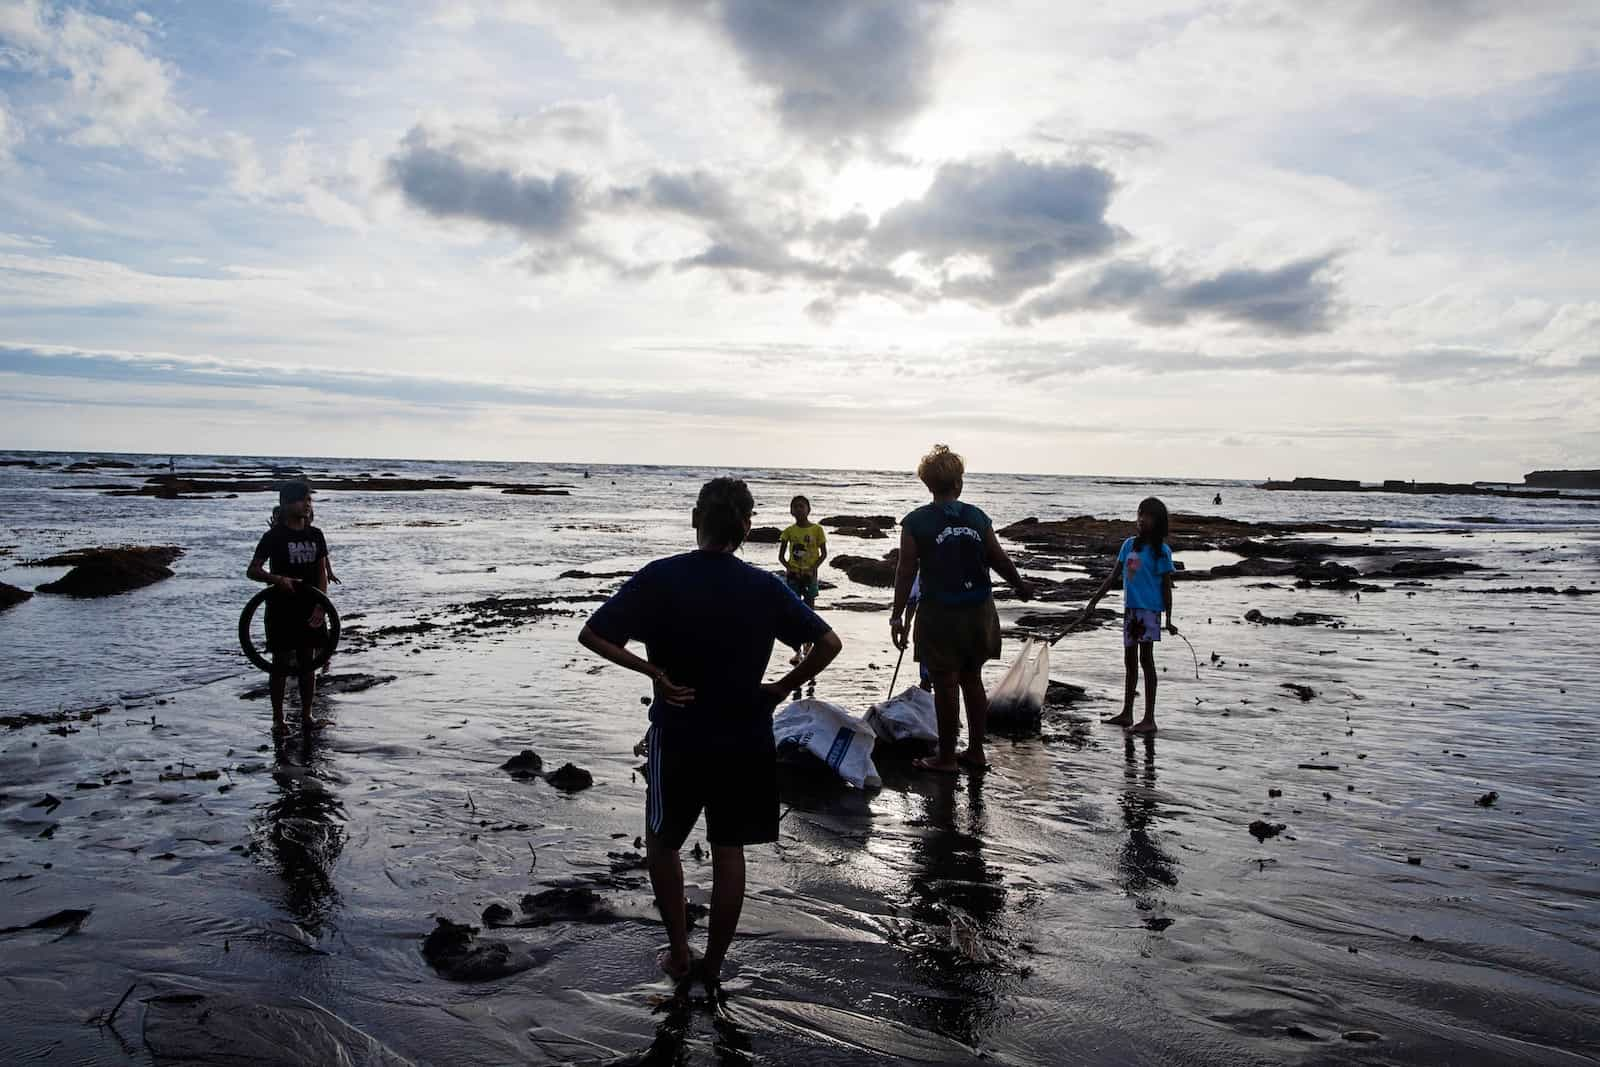 Two adults and three children who live in poverty stand on a beach on Bali at sunset, picking up trash to protect the environment.